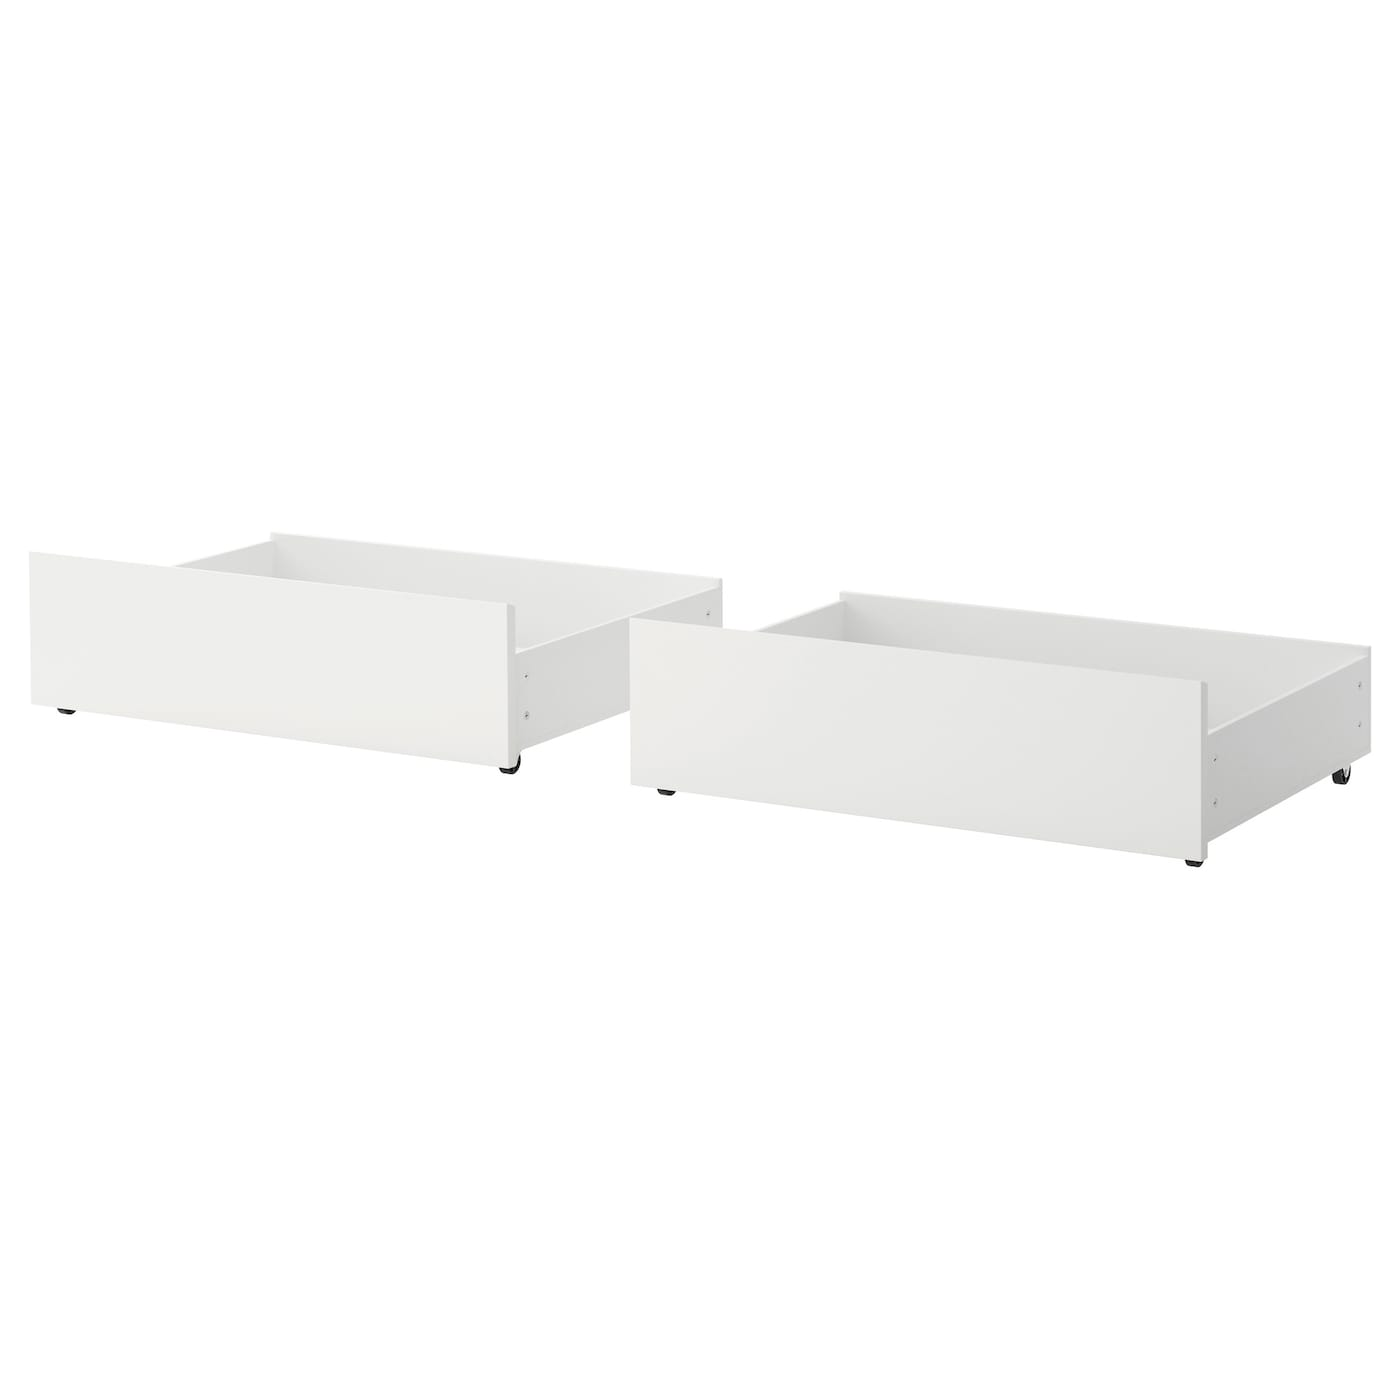 ikea malm bedroom furniture. ikea malm bed storage box for high frame smooth running castors make content easily accessible ikea malm bedroom furniture